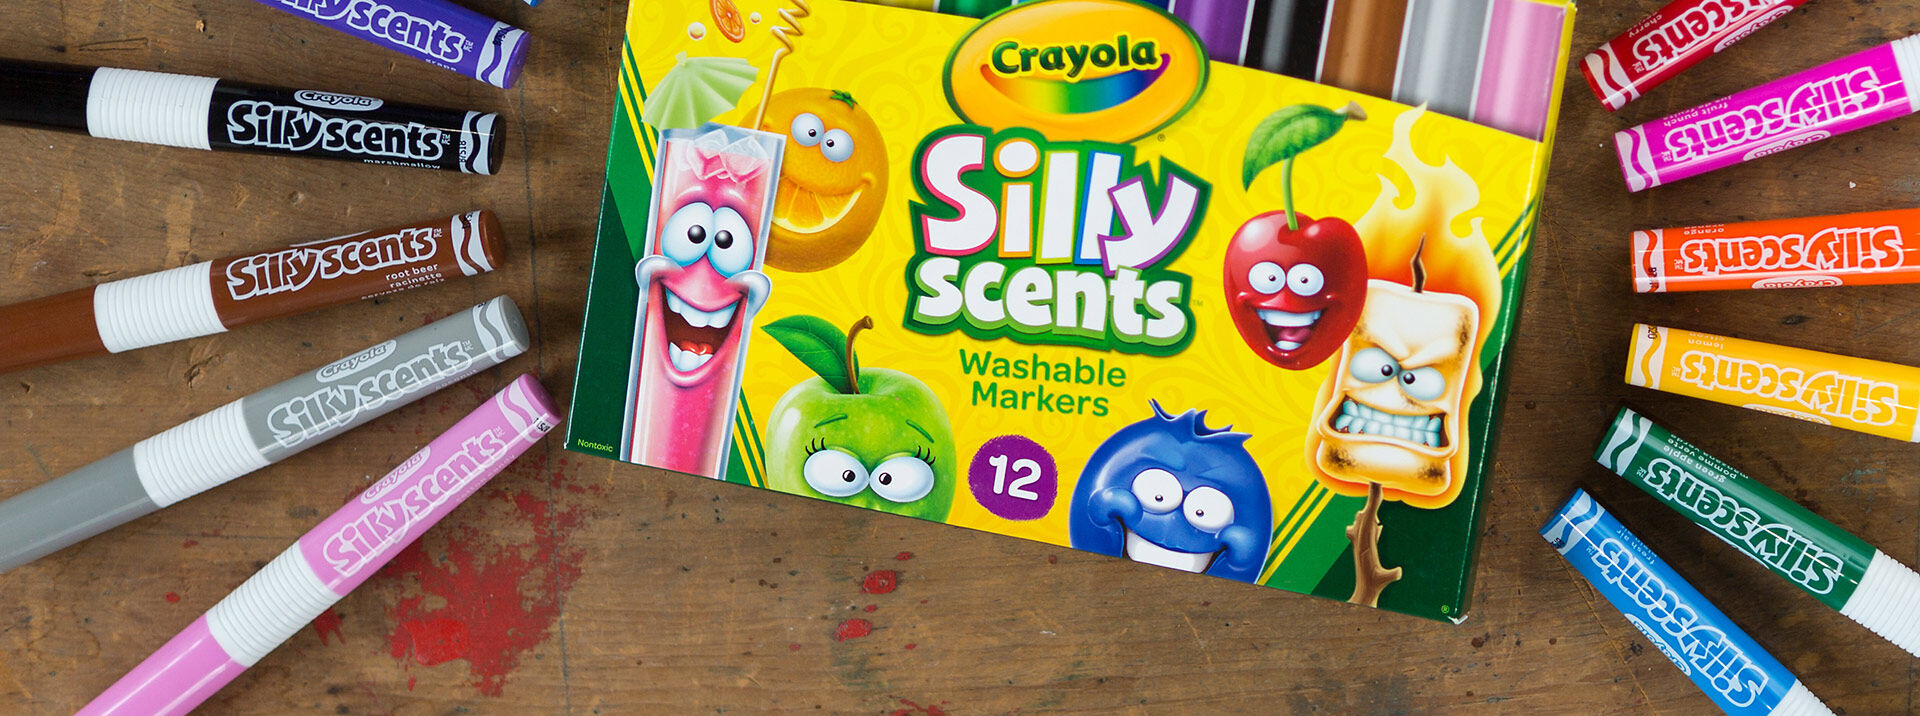 Silly Scents